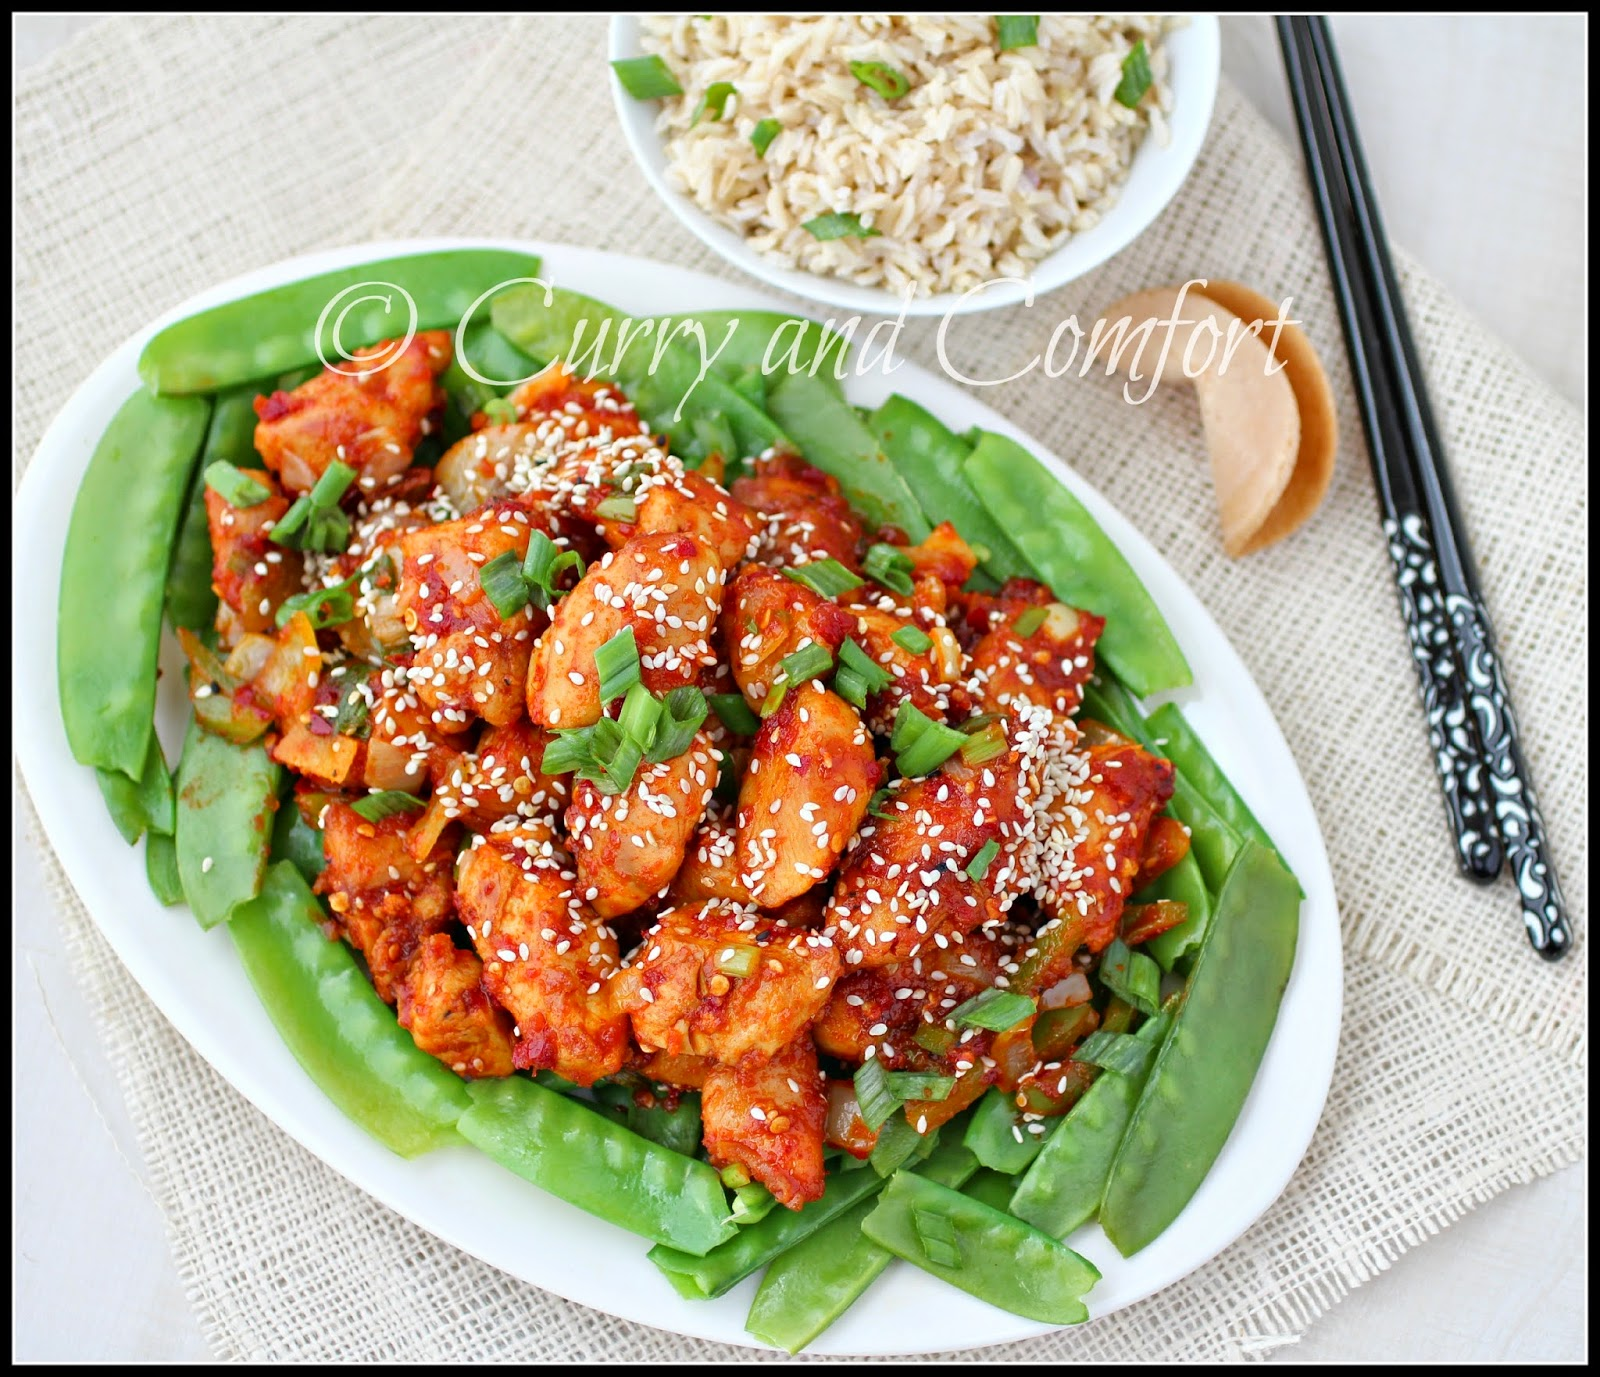 Sweet Chili Chicken, Chicken, Chili Sauce, Asian